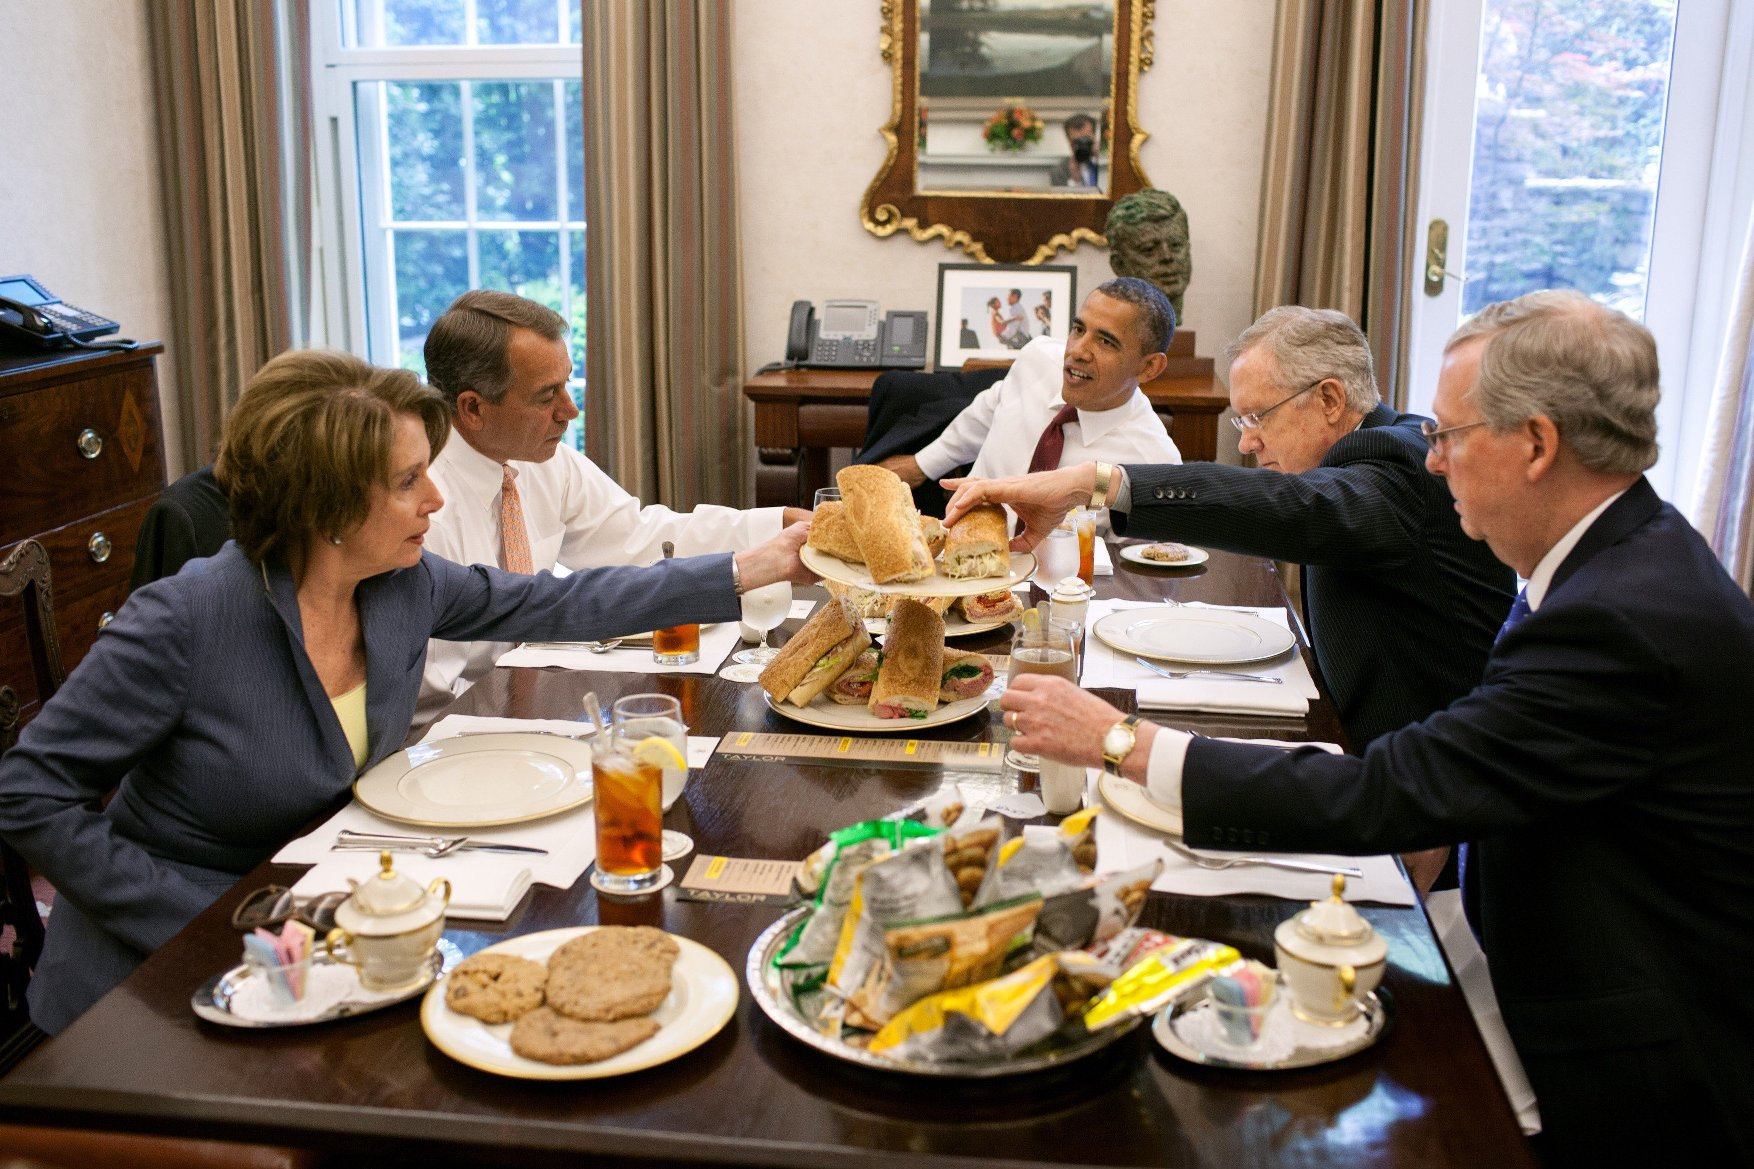 May 16, 2012 - Washington, District of Columbia, U.S. - President BARACK OBAMA has lunch with members of the Congressional Leadership in the Oval Office Private Dining Room. The President served hoagies from Taylor Gourmet, which he purchased after a small business roundtable earlier in the day. Seated, clockwise from the President, are: Senate Majority Leader HARRY REID, Senate Minority Leader MITCH MCCONNELL, House Minority Leader NANCY PELOSI, and House Speaker JOHN BOEHNER., Image: 131471942, License: Rights-managed, Restrictions: , Model Release: no, Credit line: Profimedia, Zuma Press - Archives